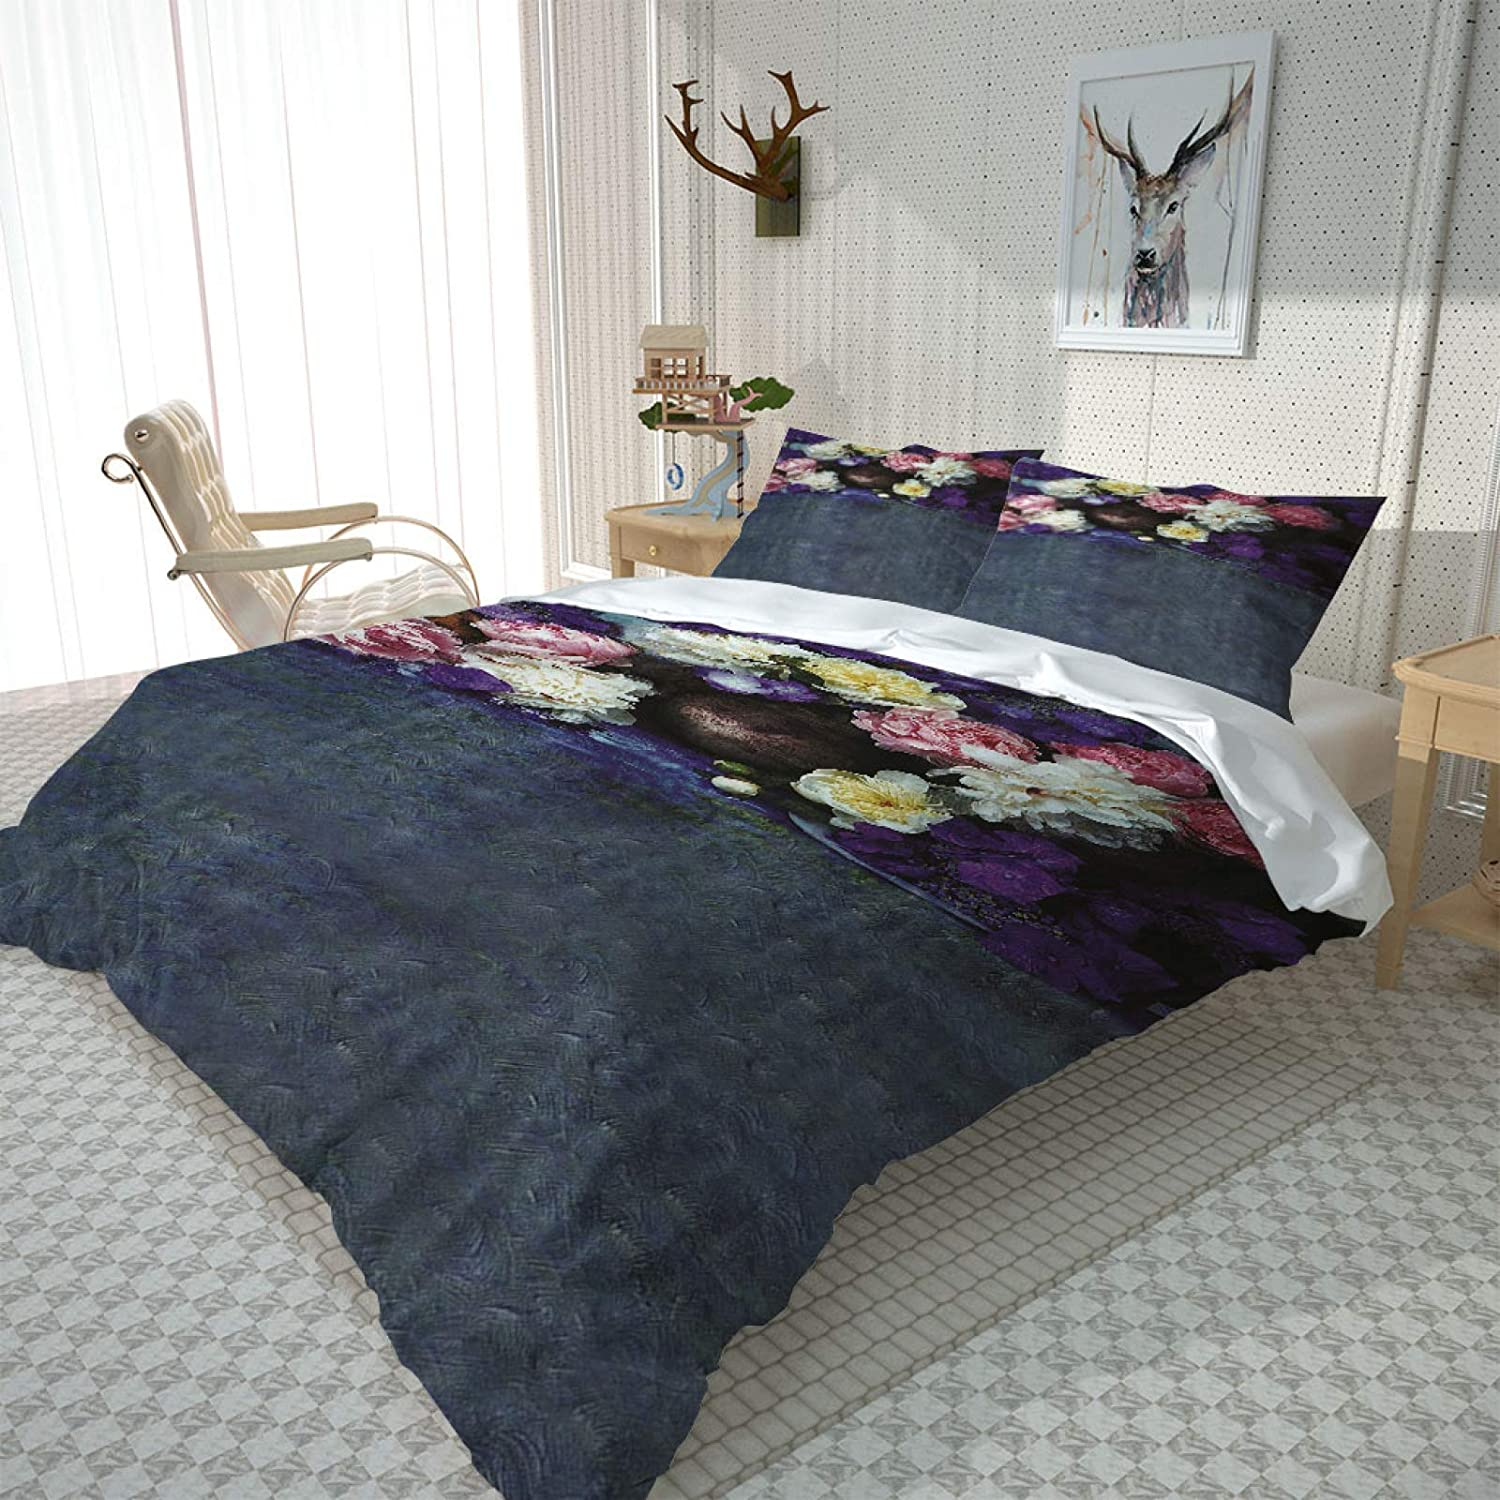 HKDGHTHJ 3D Bedding is Super Soft Credence and Vintage Oil Luxury Comfortable Pa